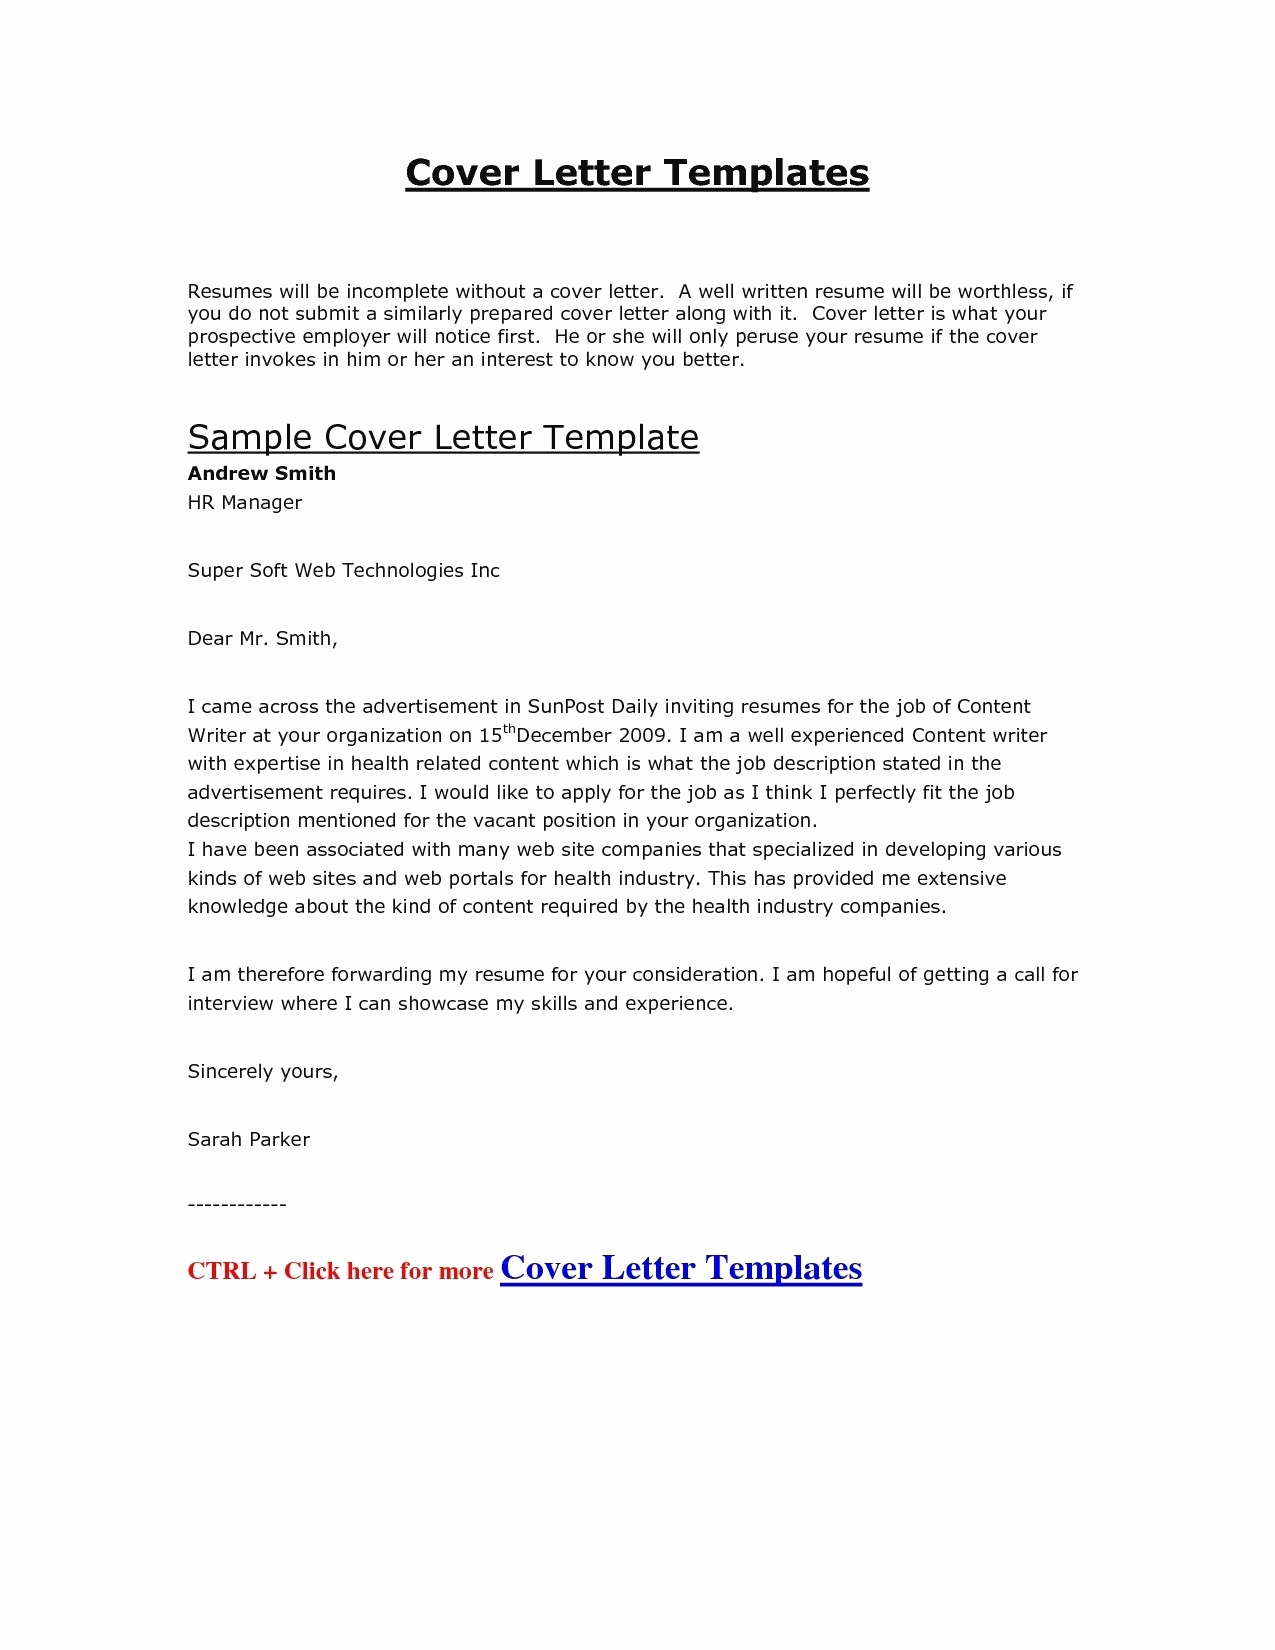 Hr Cover Letter Template   Good Cover Letter Examples Inspirational Job Application  Format